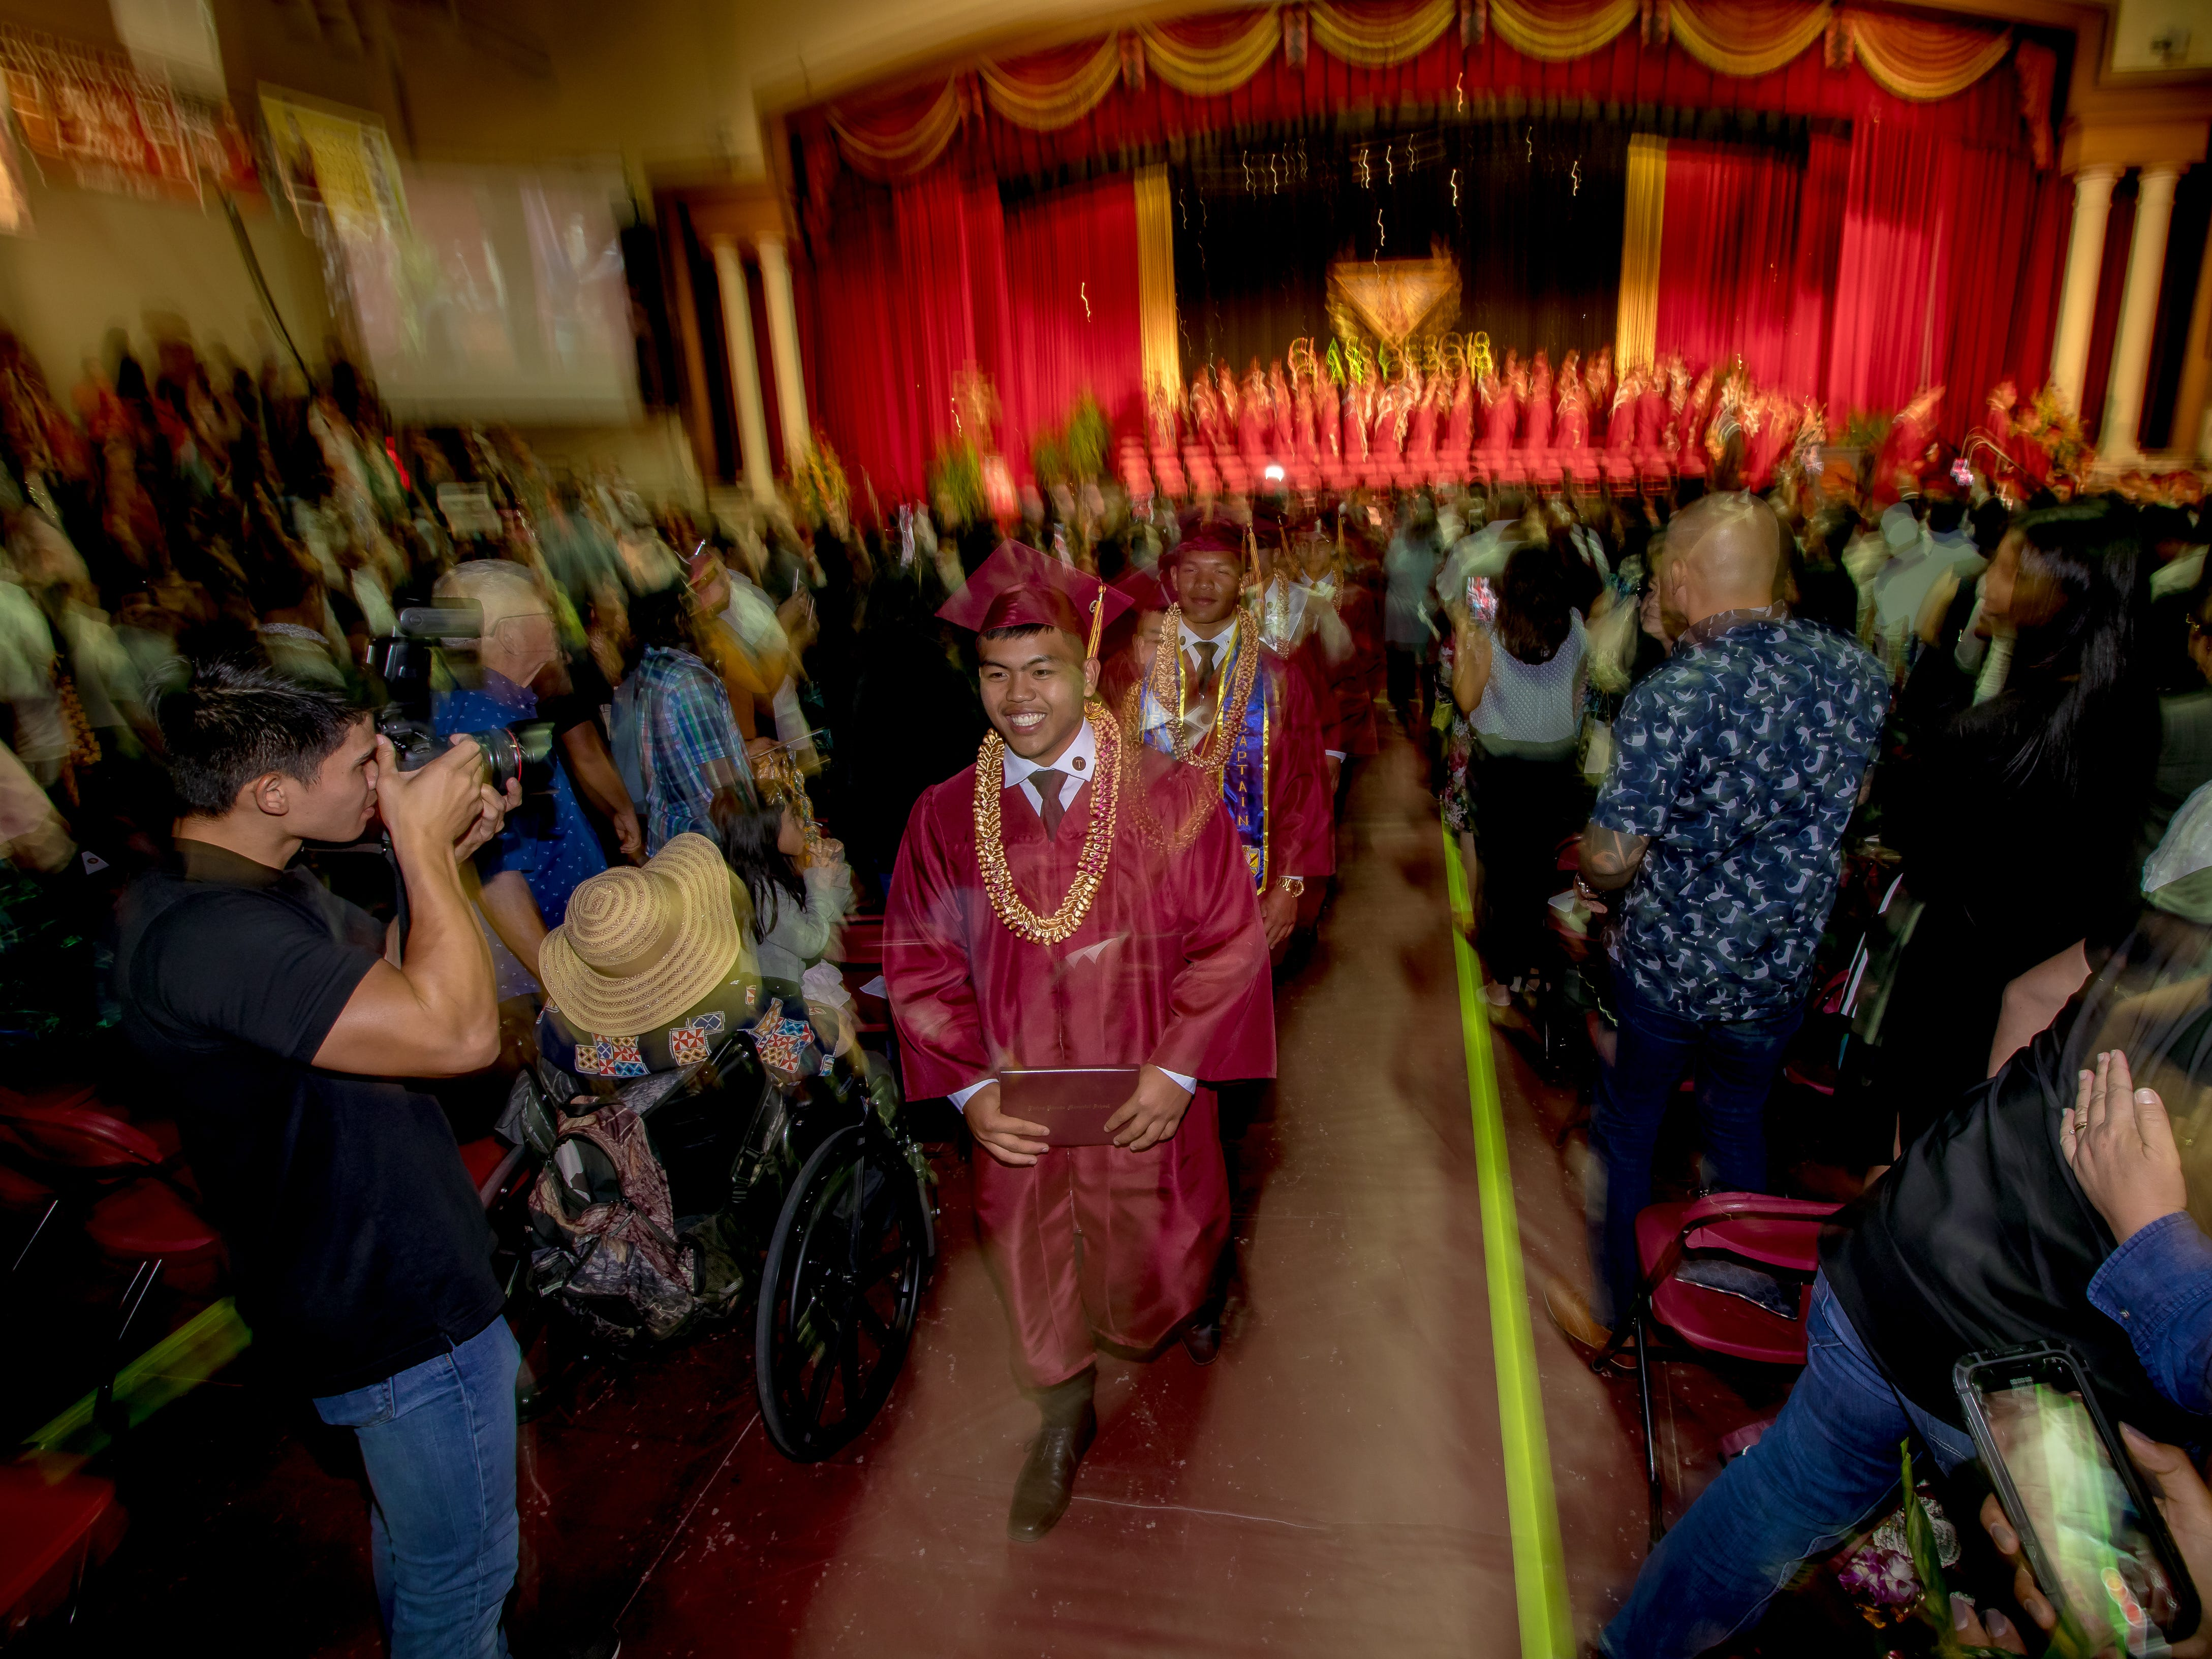 Father Duenas Memorial School Class of 2019 graduates parade out of the Phoenix Center after their commencement ceremony  in Mangilao on Wednesday, May 8, 2019.